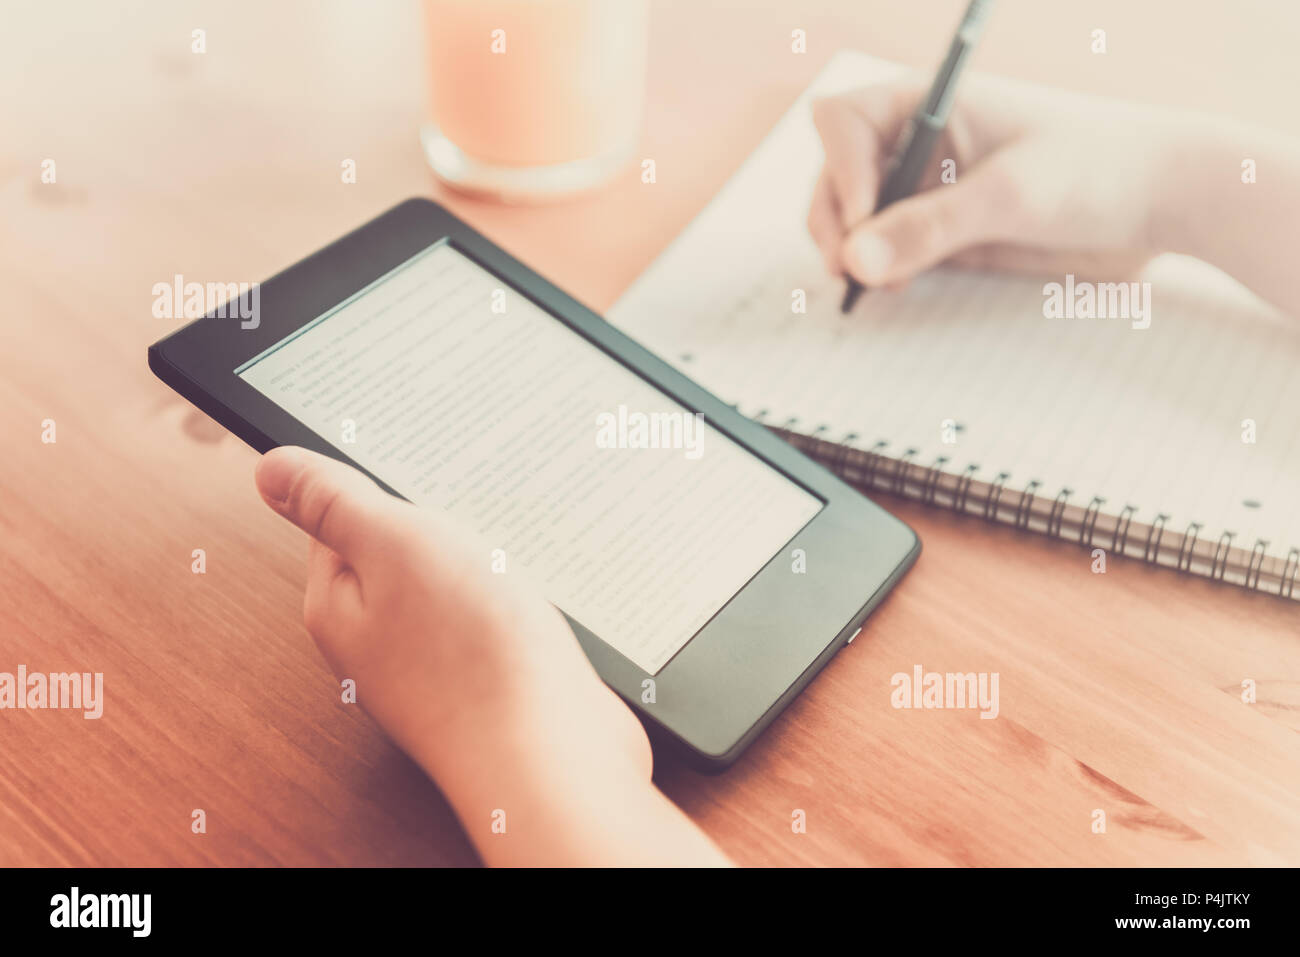 Girl is reading ebook on digital tablet device and is taking notes - Stock Image